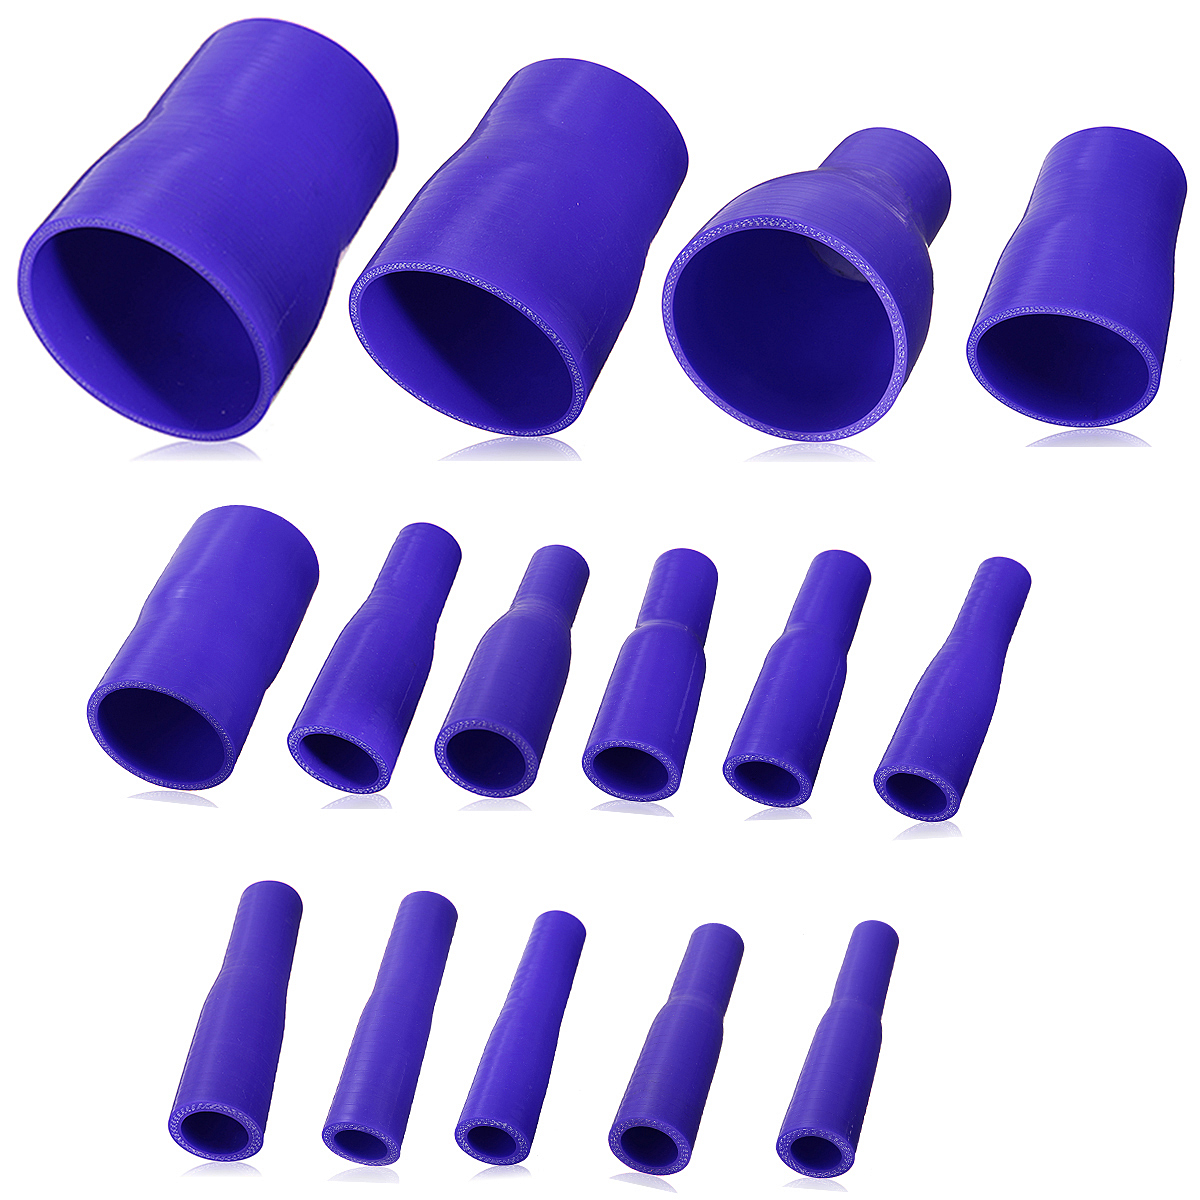 Coupler Joiner Reduction Auto Silicone Hoses Straight Reducer